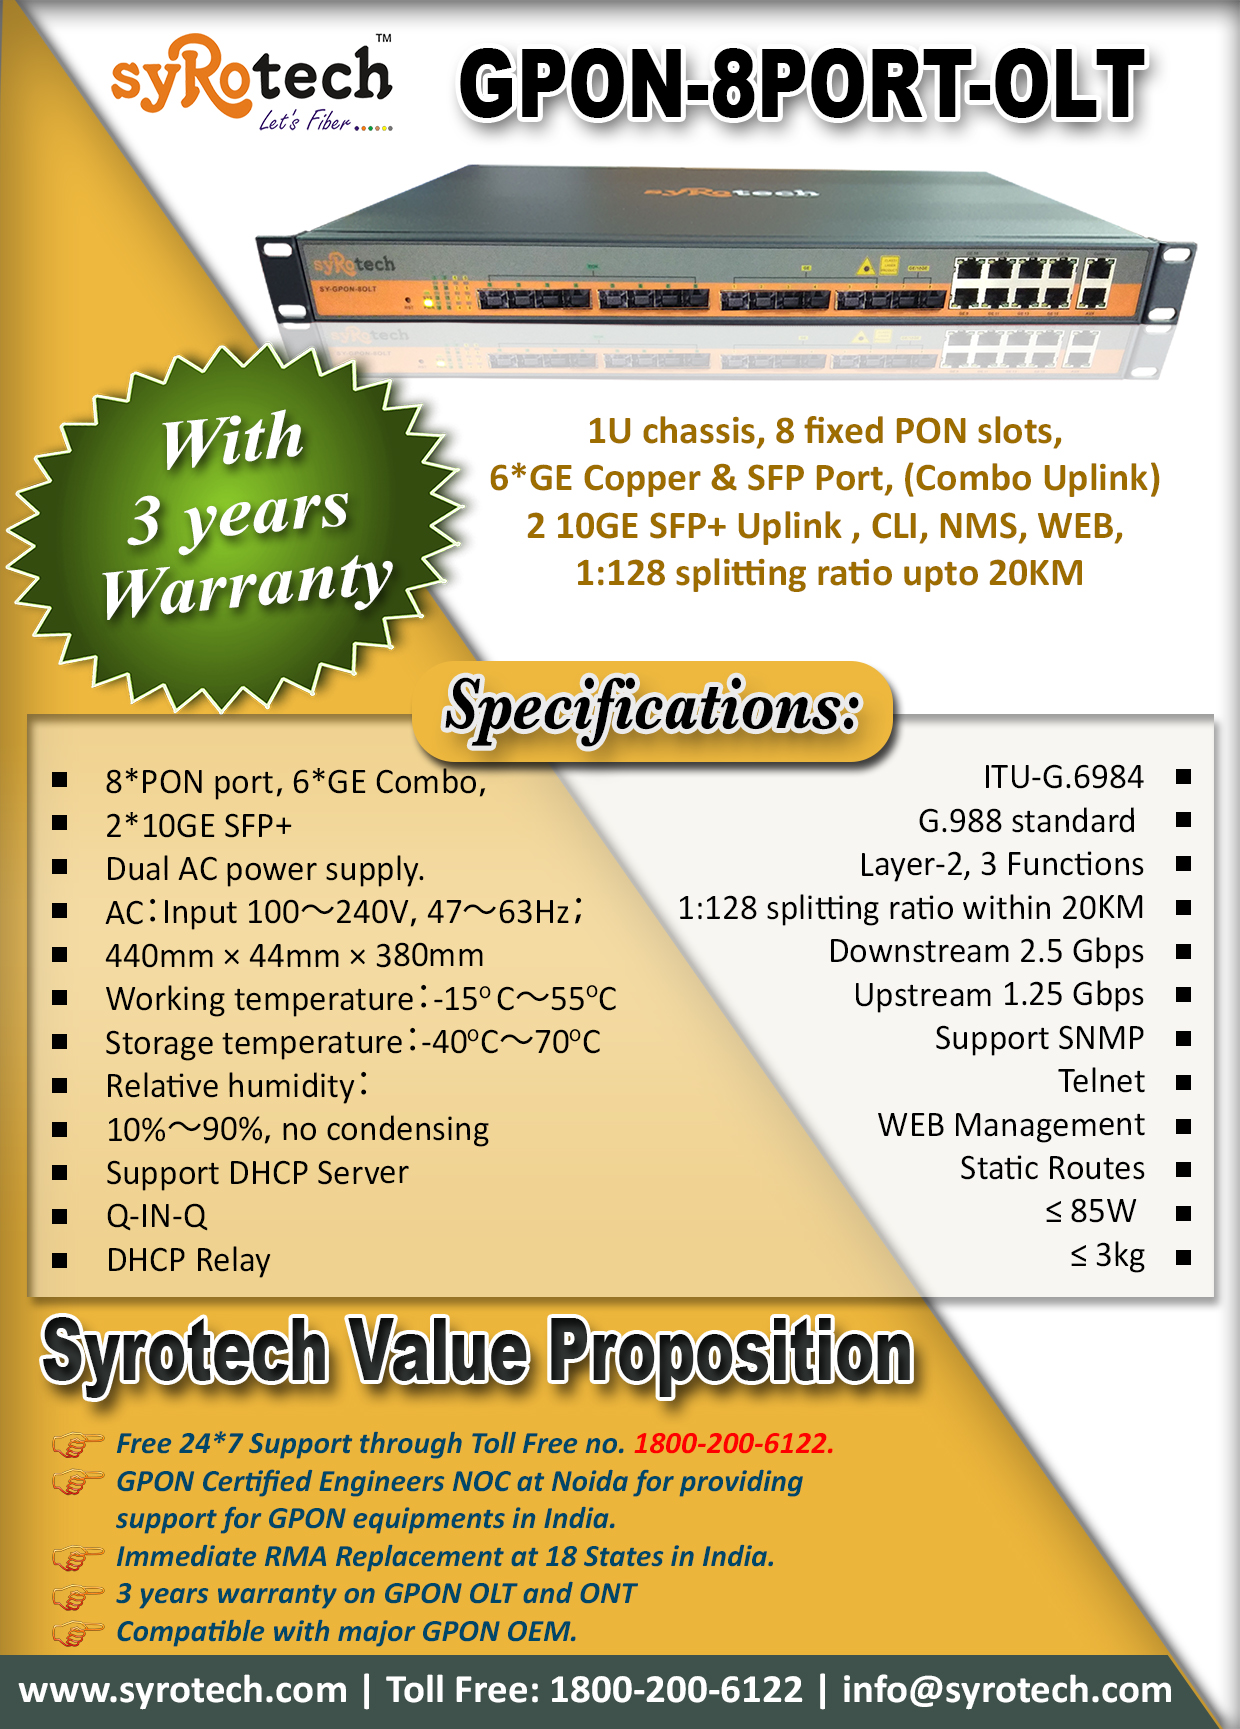 Gpon-8Port-Olt         Syrotech Value Proposition | SYROTECH